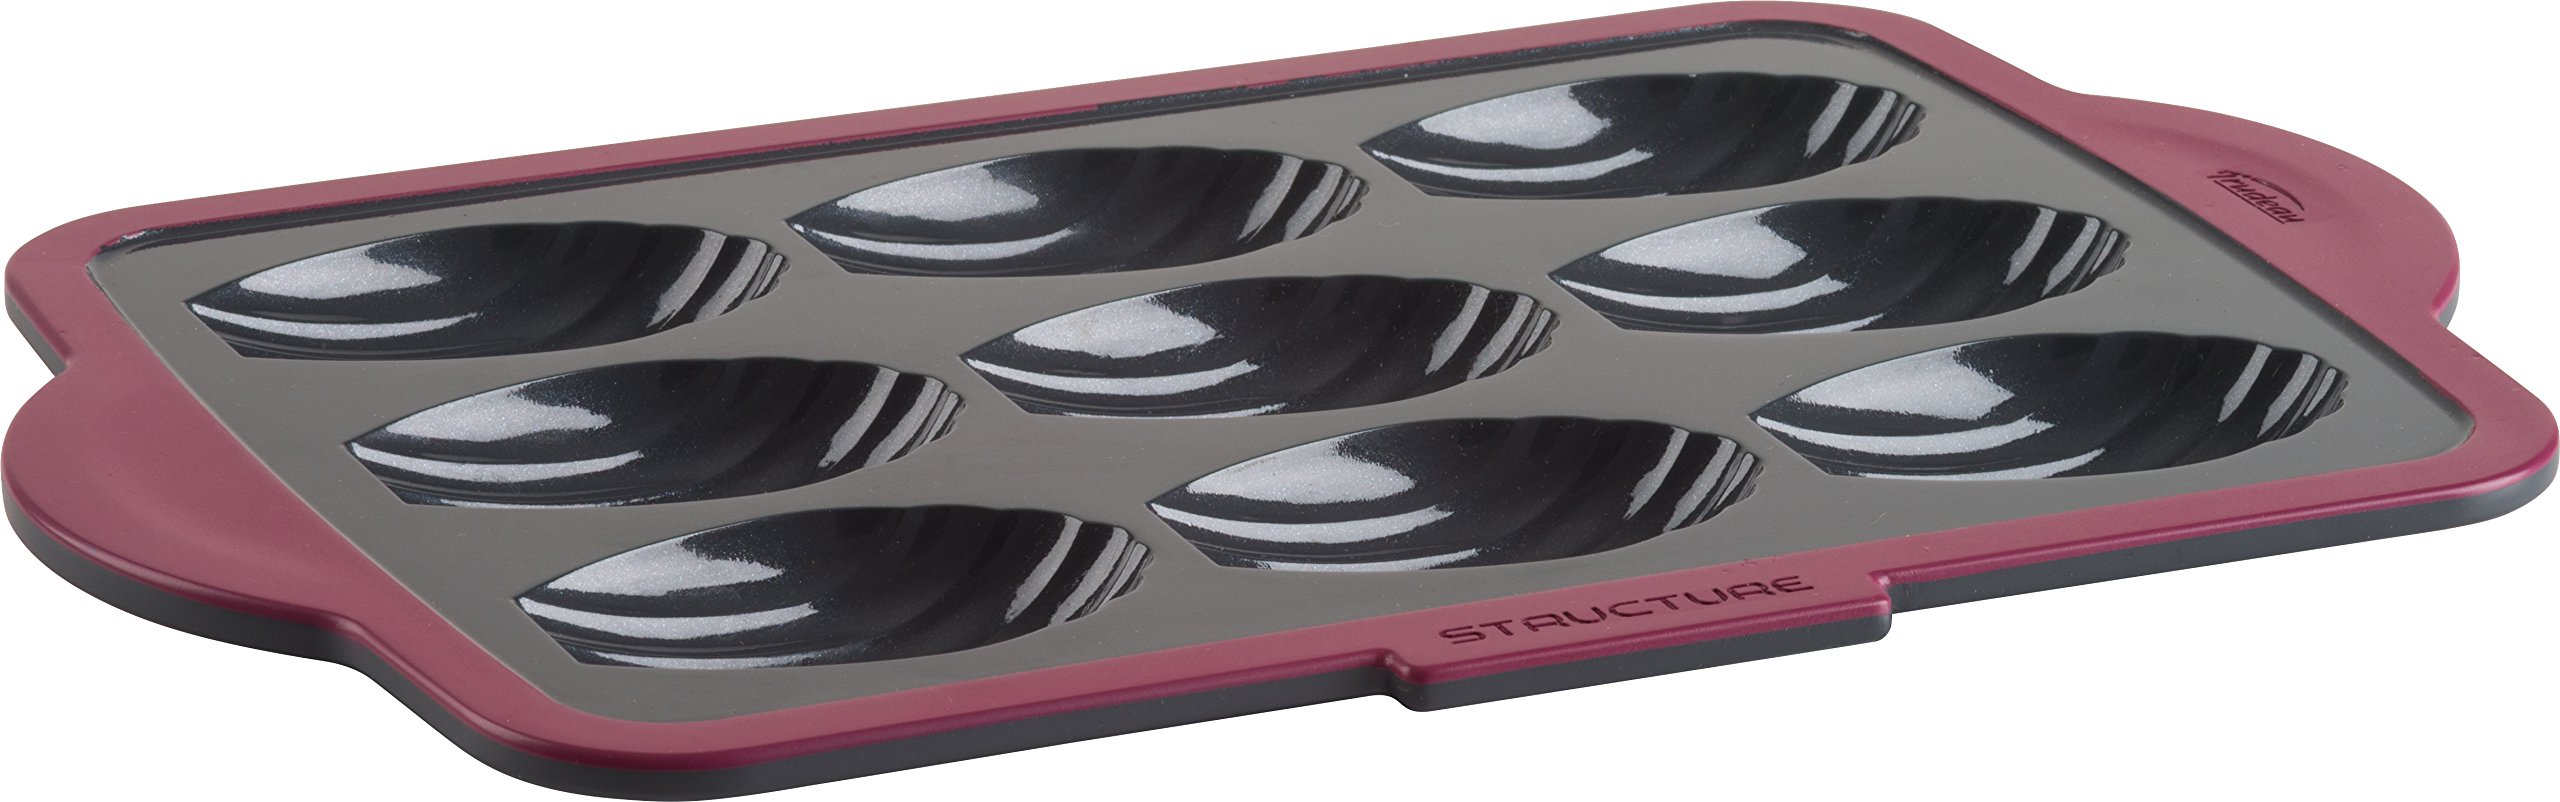 Trudeau 09915023 9 Count Structure Muffin Pans, Grey/Pink by Trudeau (Image #1)